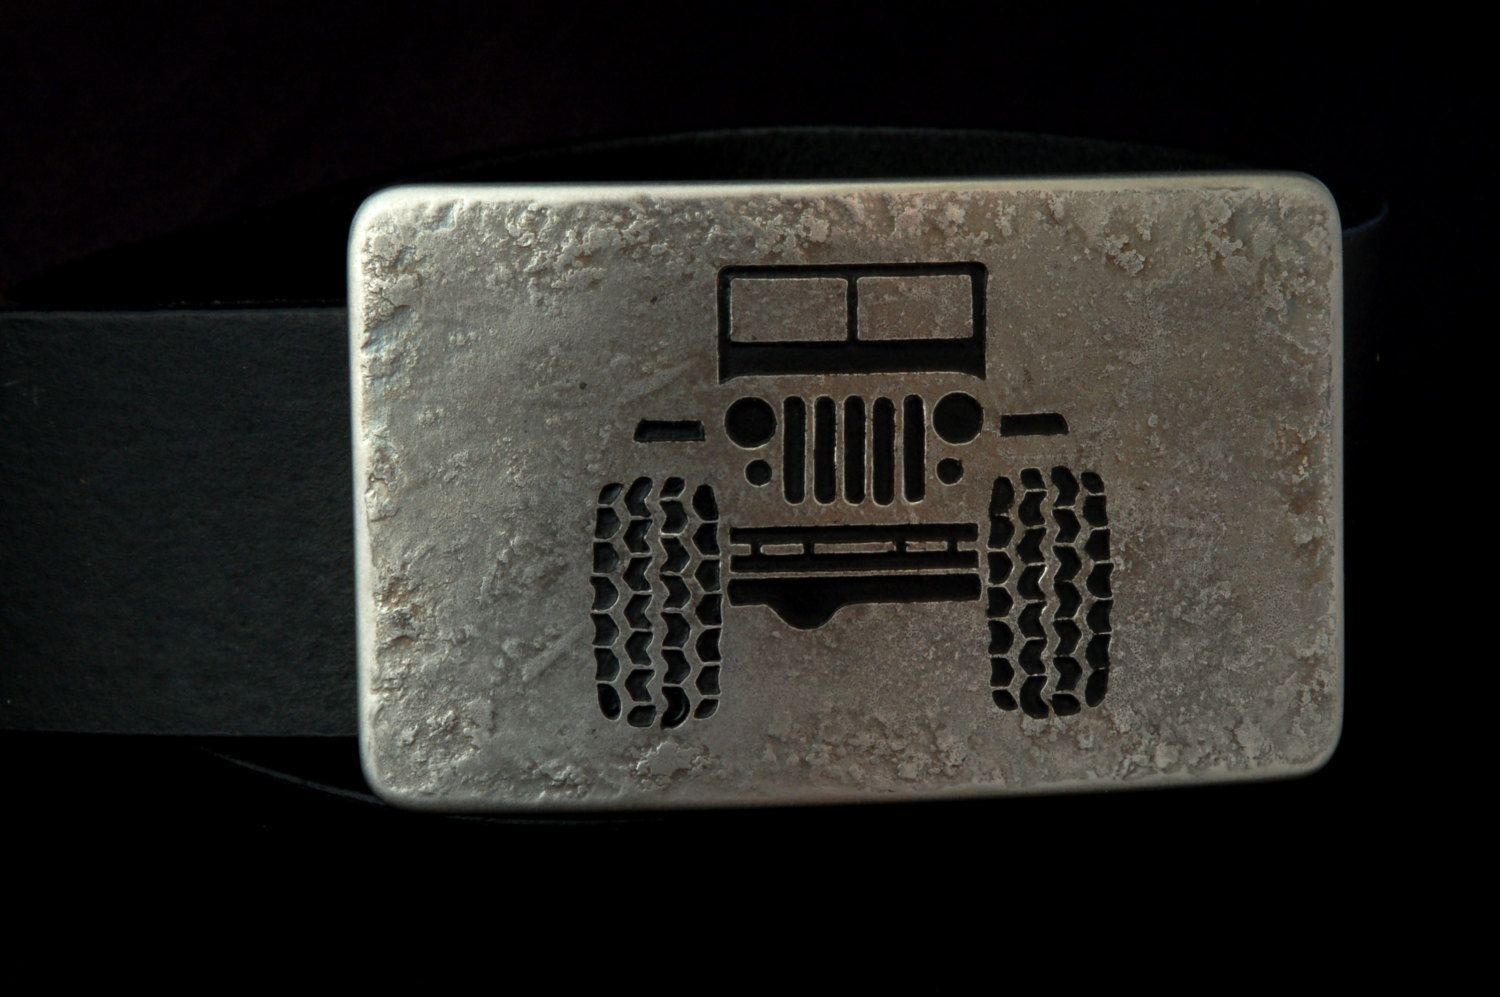 JEEP Accessories Silver Belt Buckle 4X4 Off Road Stainless Steel Tire Track Made in CANADA Hand Forged Belt Buckle Fits 1.5